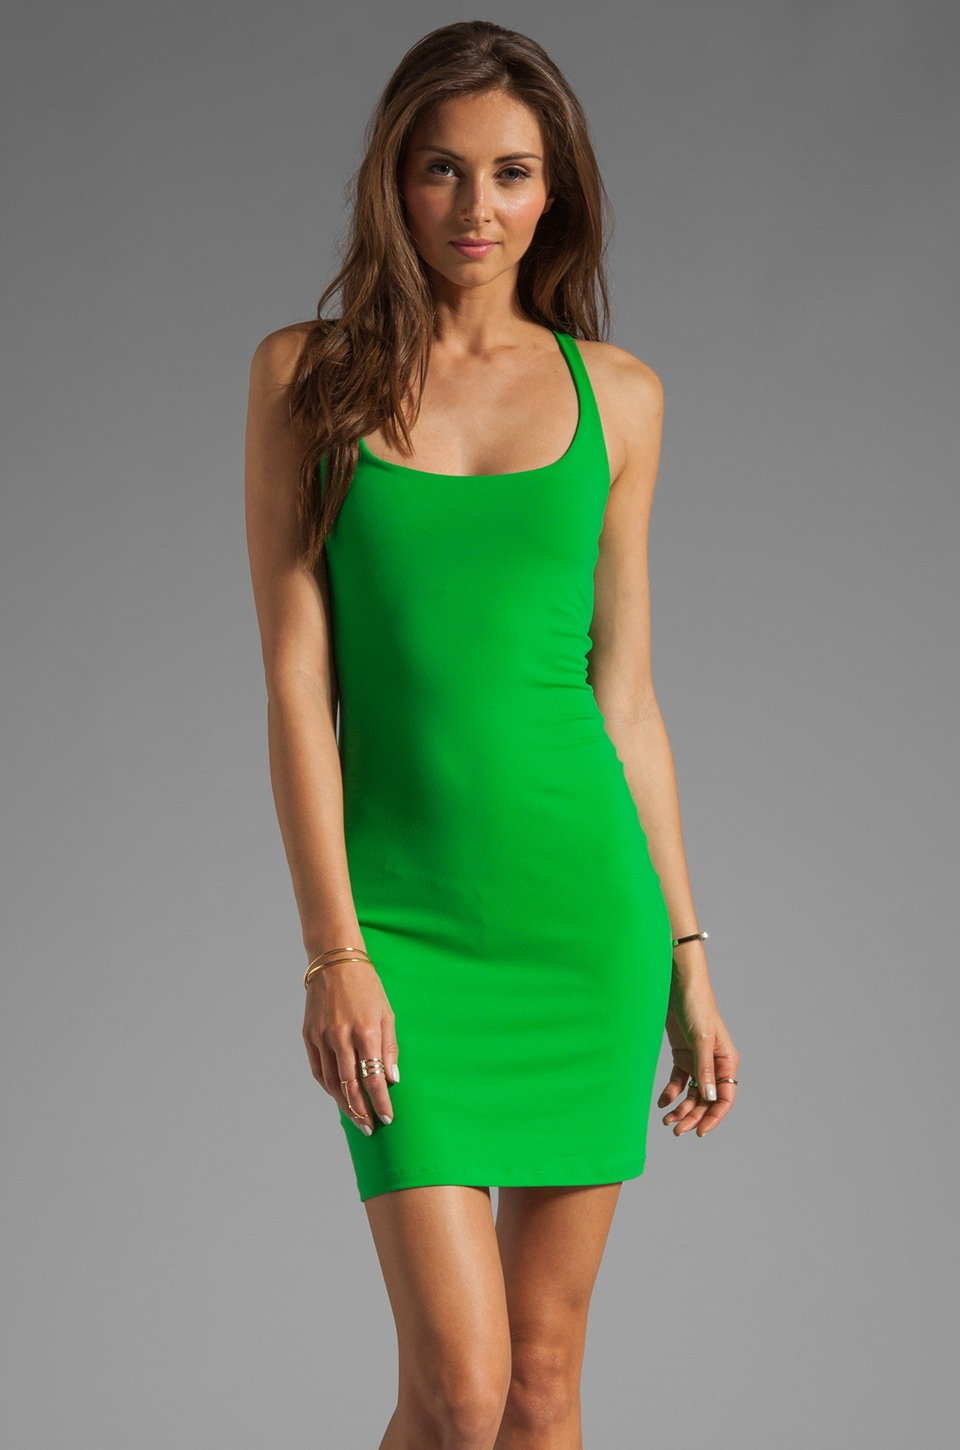 Susana Monaco Racer Mini Dress in Palm Tree